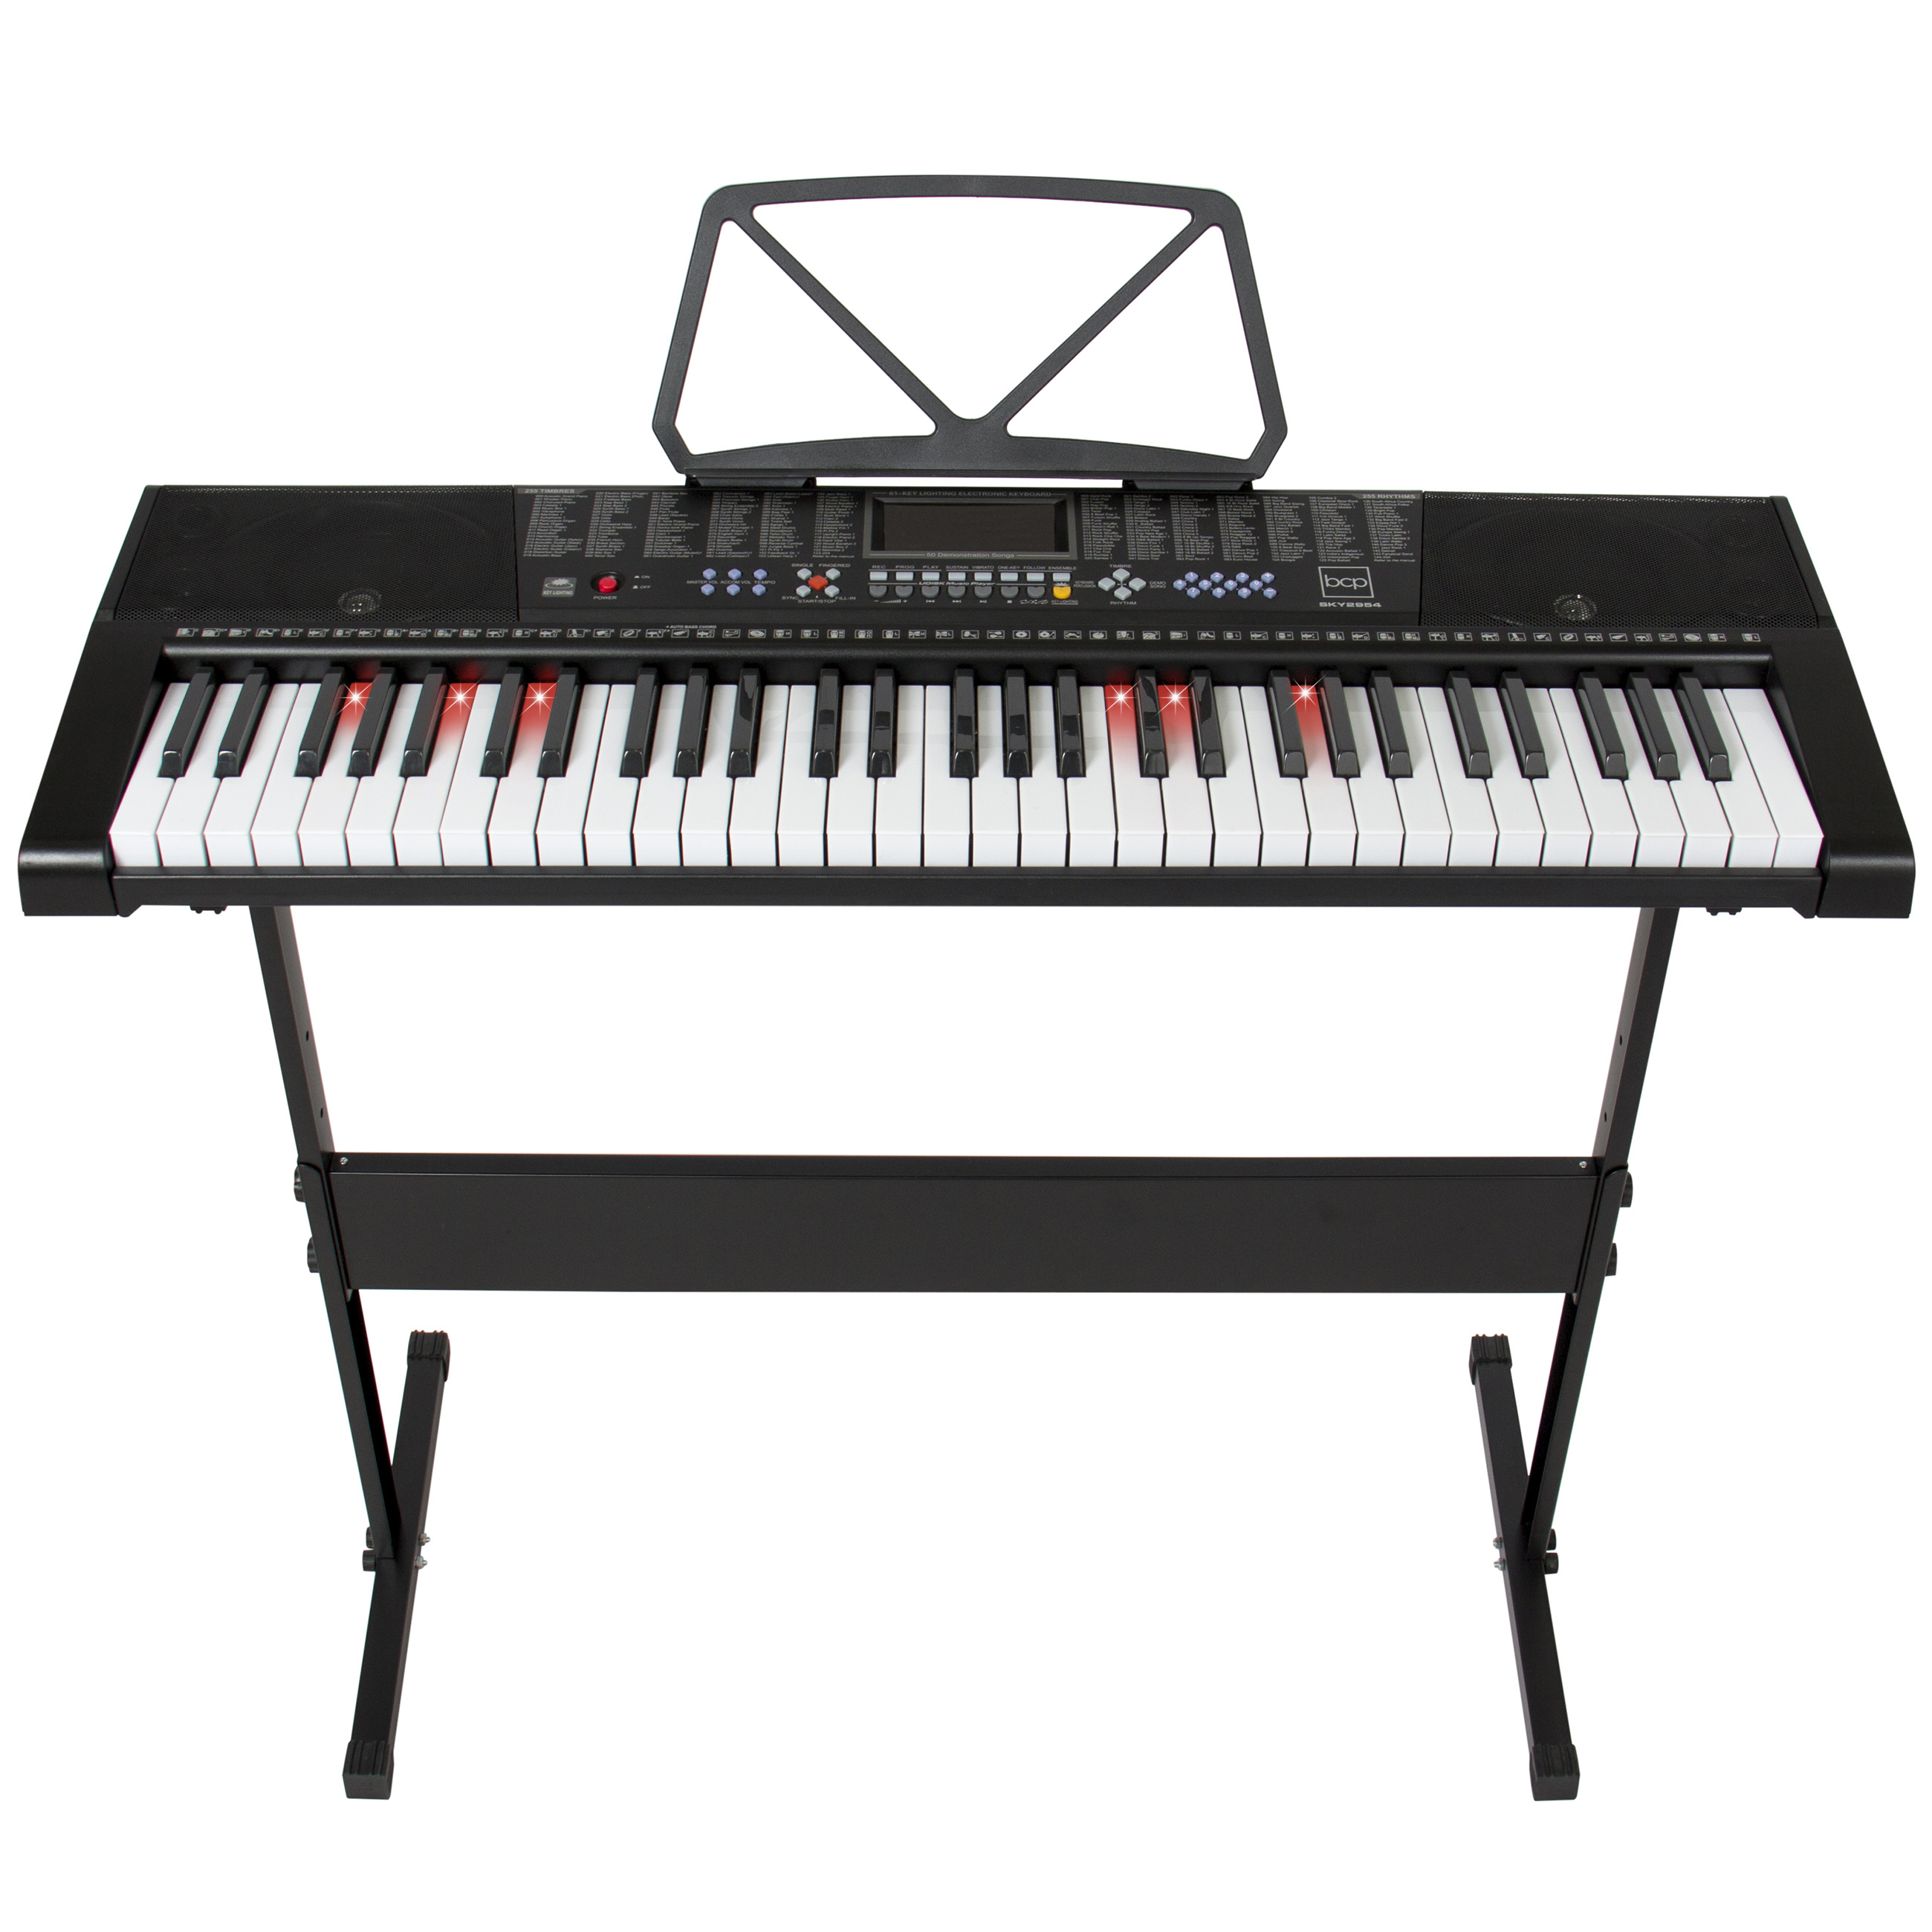 Best Choice Products Teaching Electronic Keyboard Piano Set 61 Lighted Keys LED Screen W/ Adjustable H Stand, Black